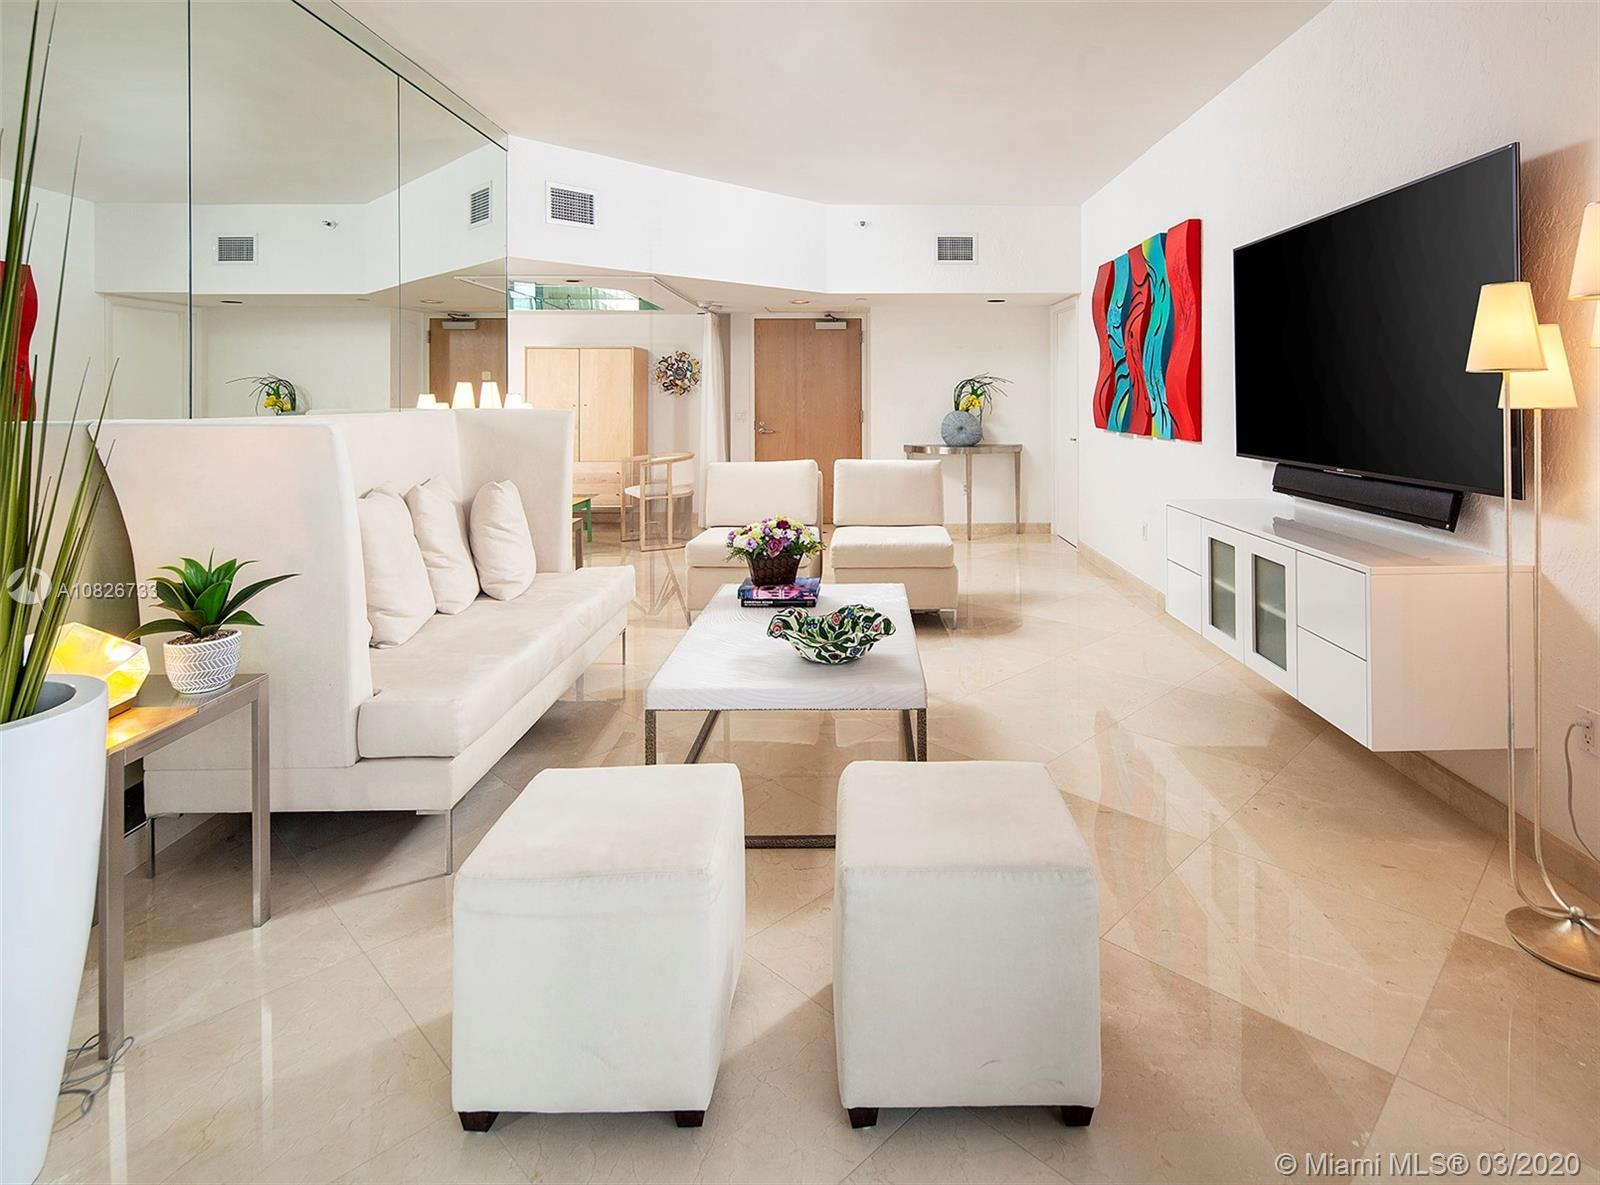 Magnificent Oceania Penthouse now available for sale. Large 1 bedroom floor plan plus a private Den